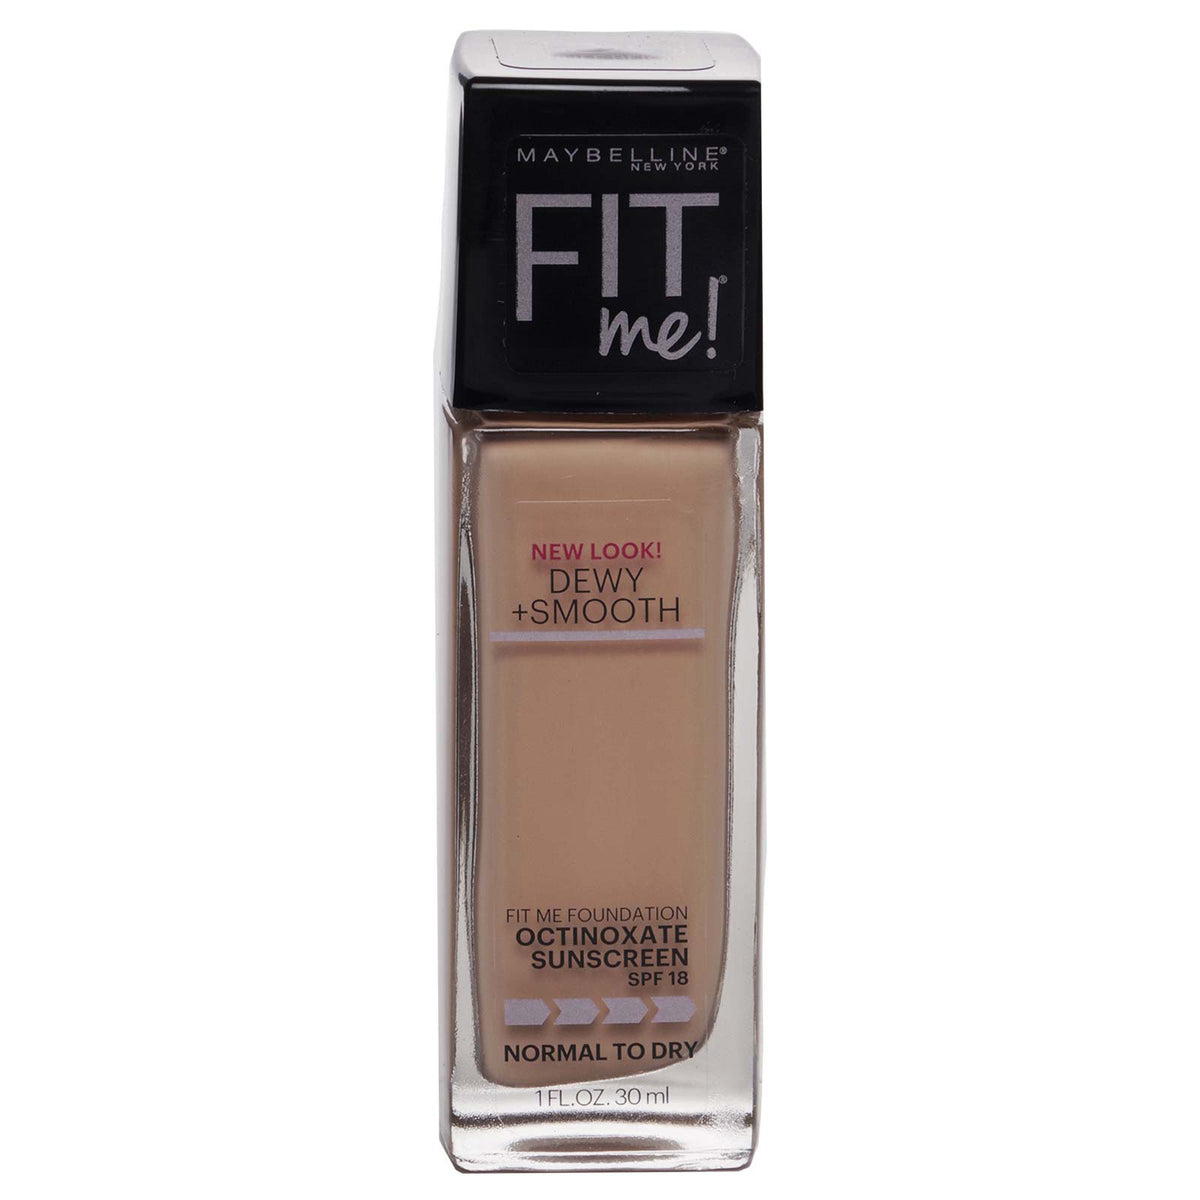 Maybelline FitMe Dewy + Smooth Foundation SPF 18 130-Buff Beige